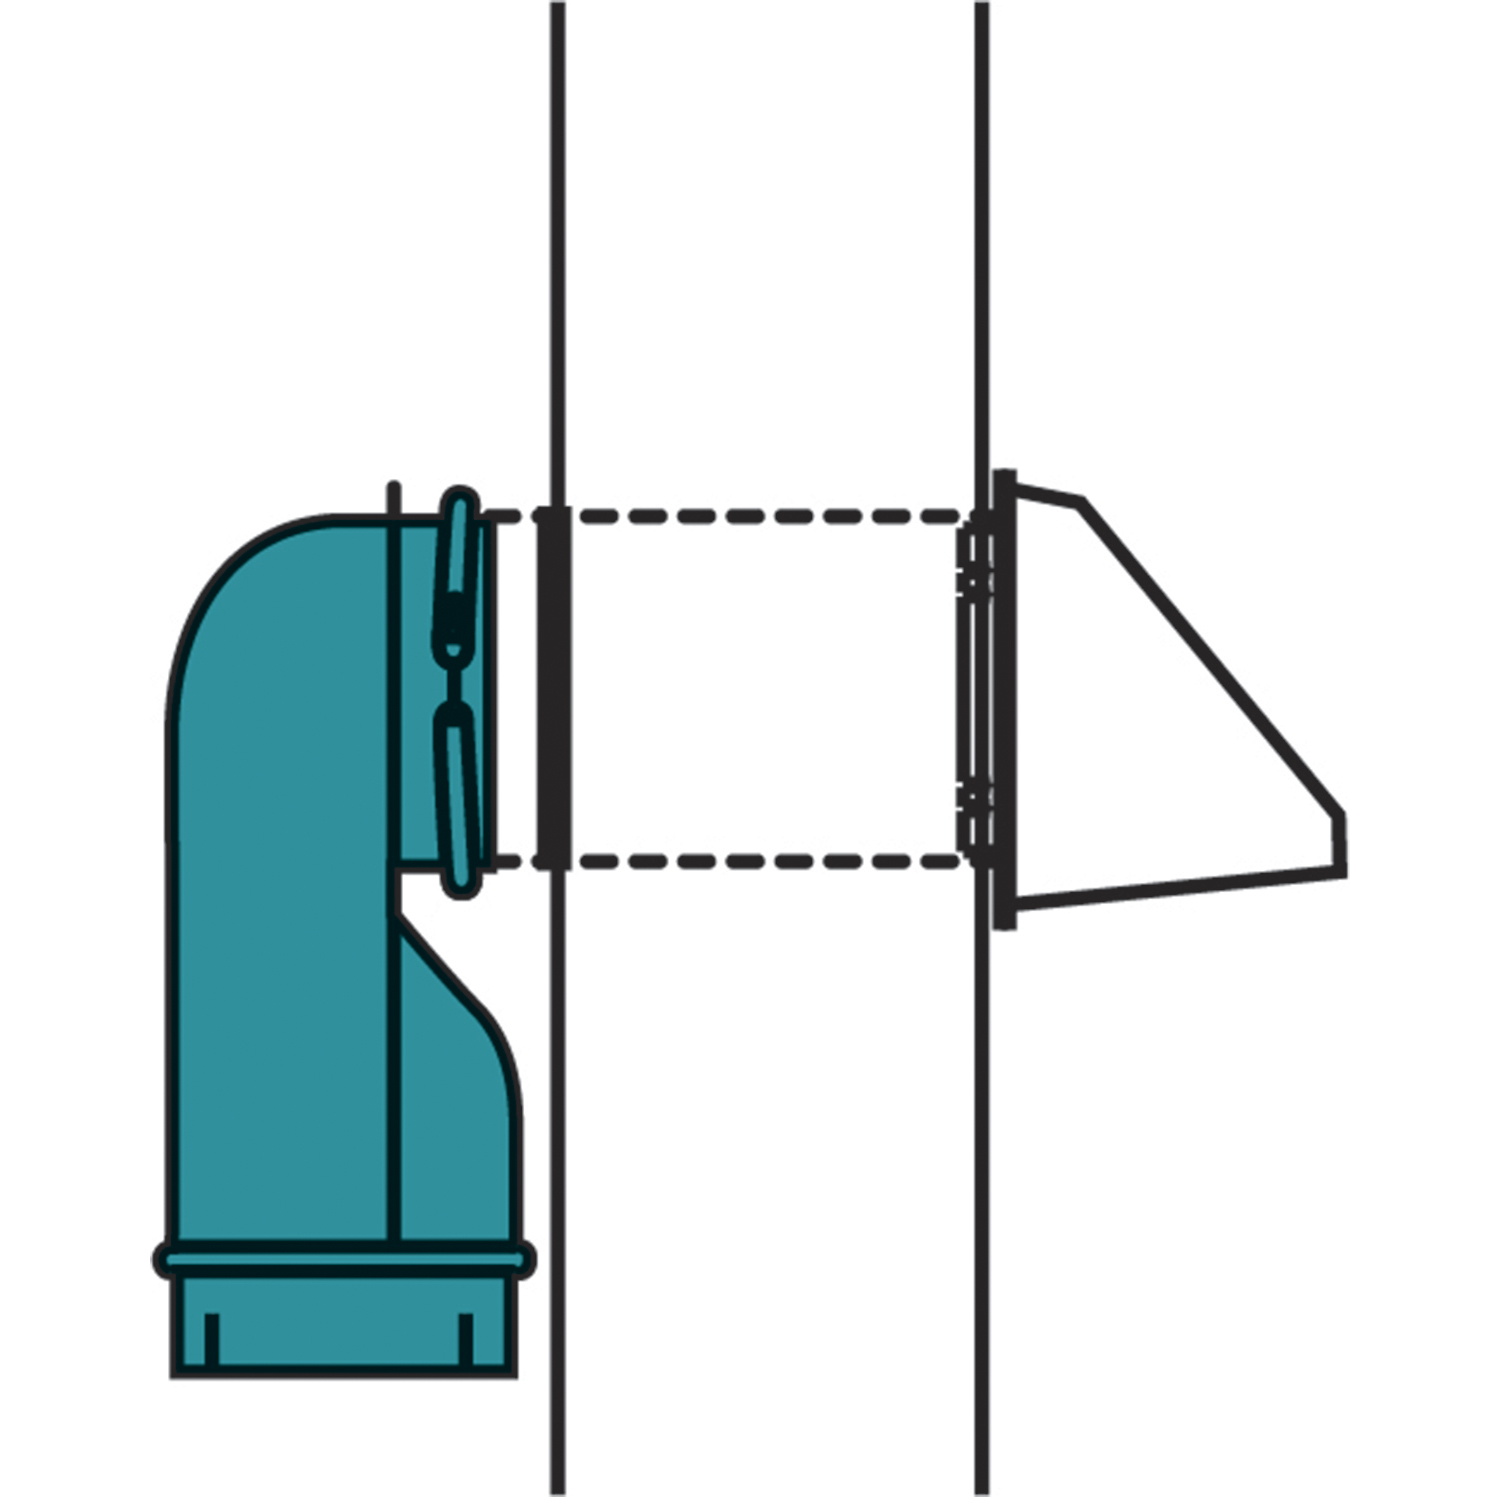 hight resolution of wall offset elbow